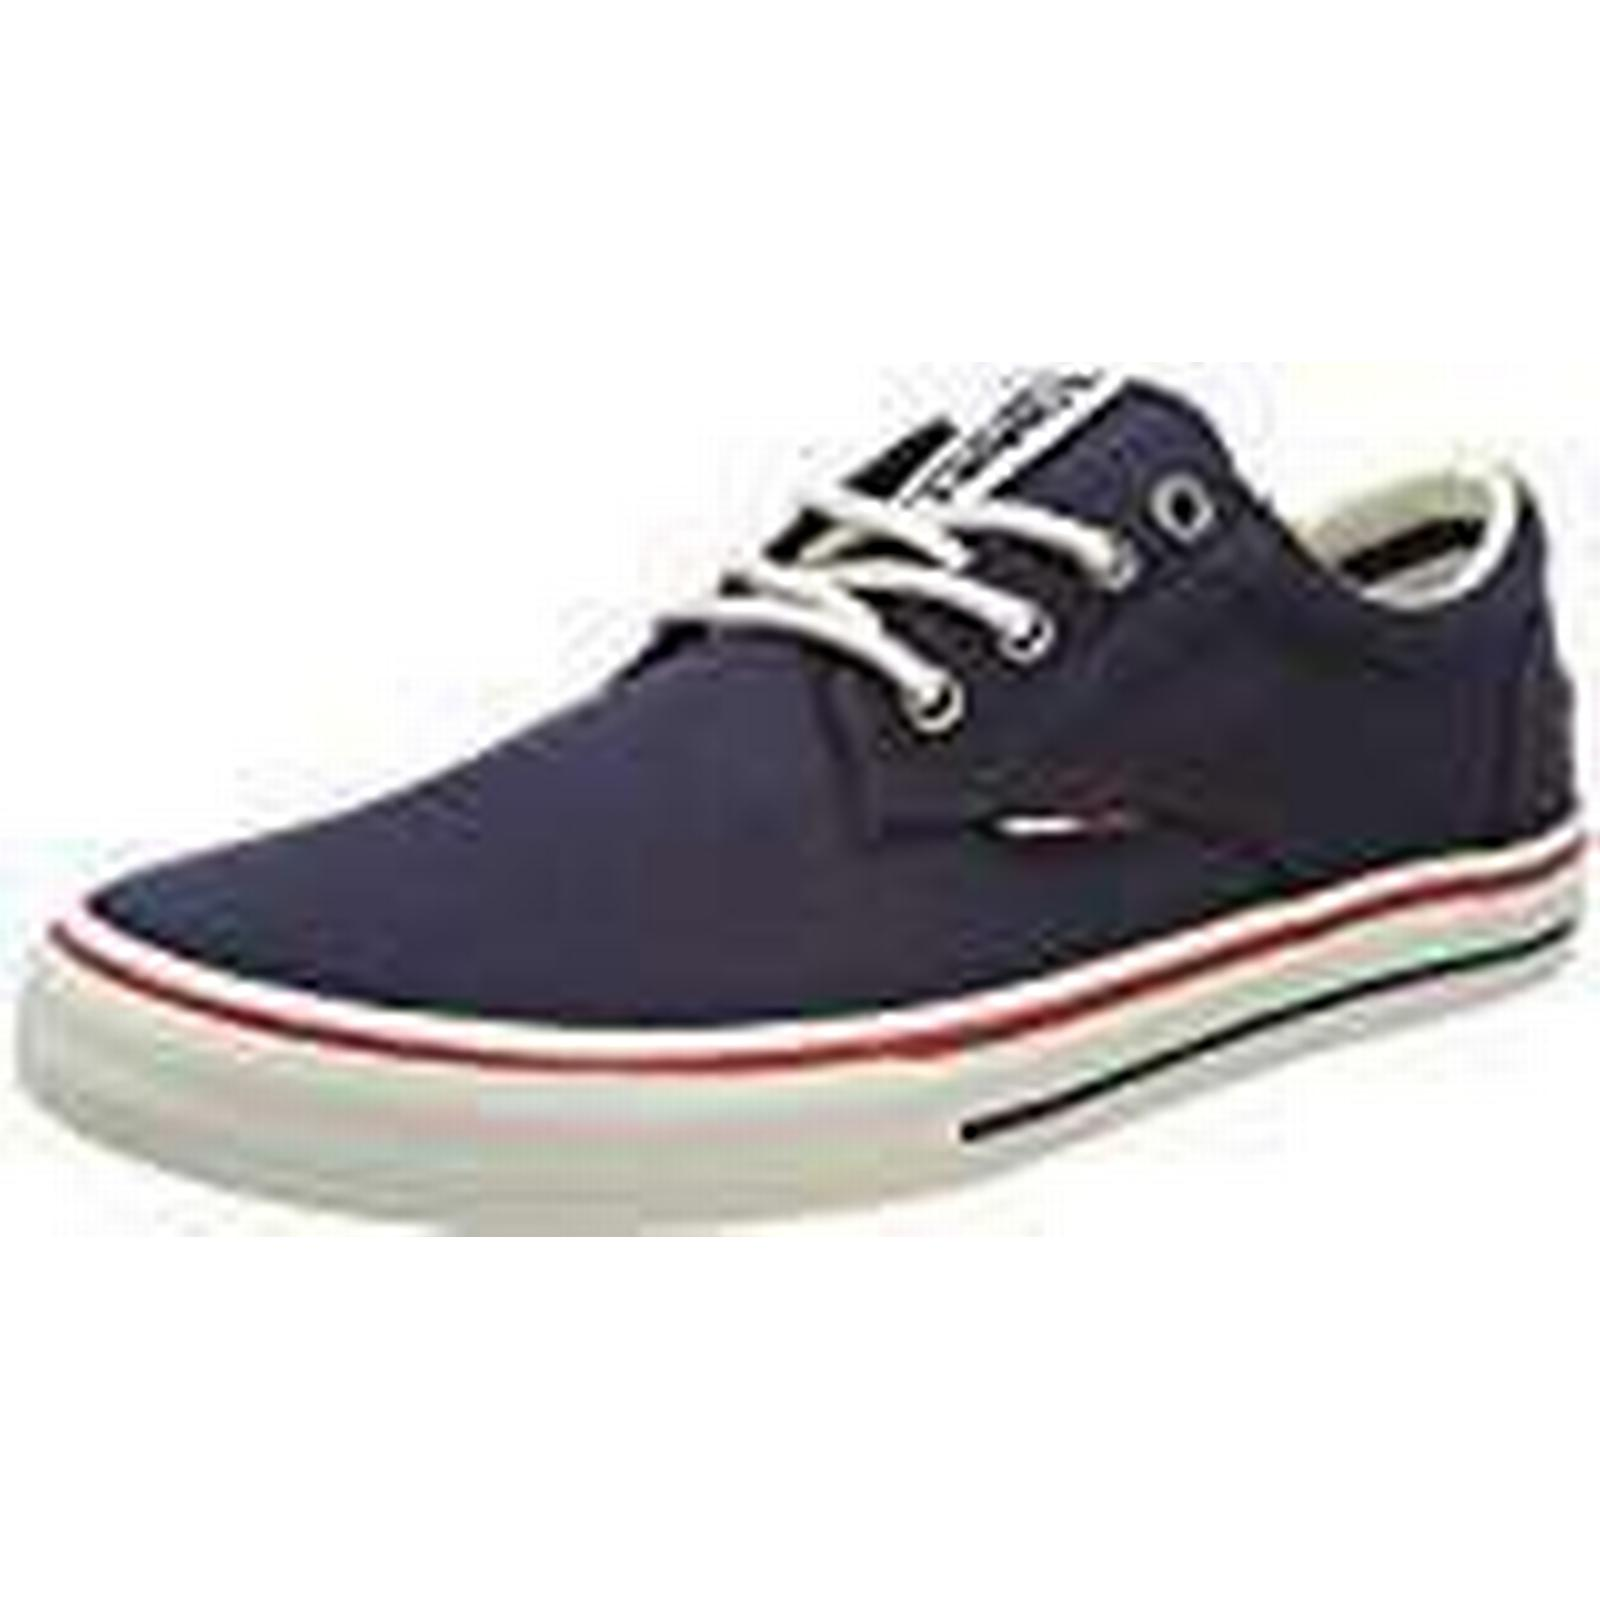 Tommy Tommy Jeans Hilfiger Denim Men's Tommy Tommy Jeans Textile Low-Top Sneakers, Blue (Ink 006), 10 UK (44 EU) 1e0356